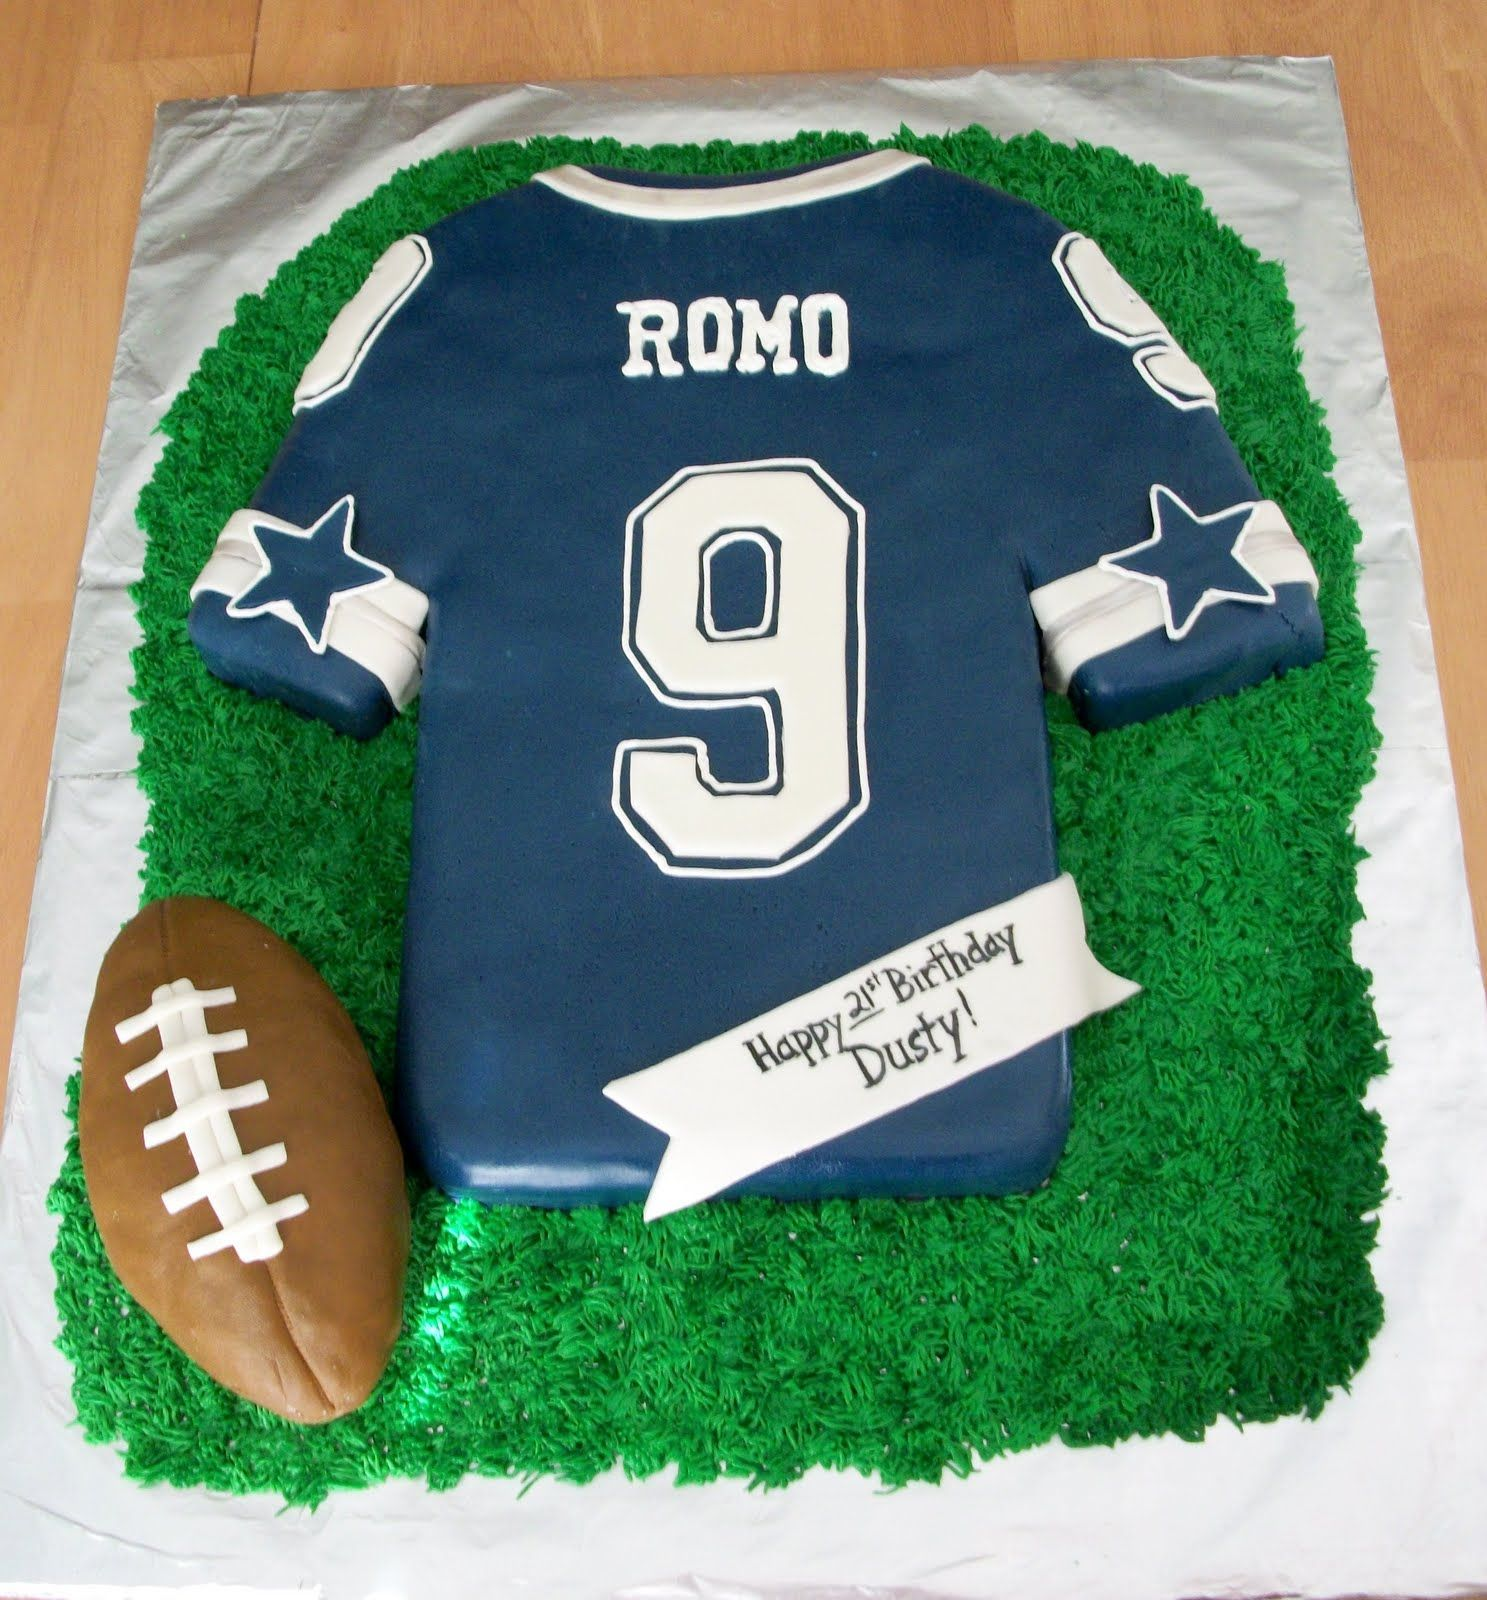 Football Jersey Cake This Is A Dallas Cowboys Tony Romo Jersey Cake For A Birthday It Is A Chocolate Fudge Cake Covered In Fondant With Fondant And